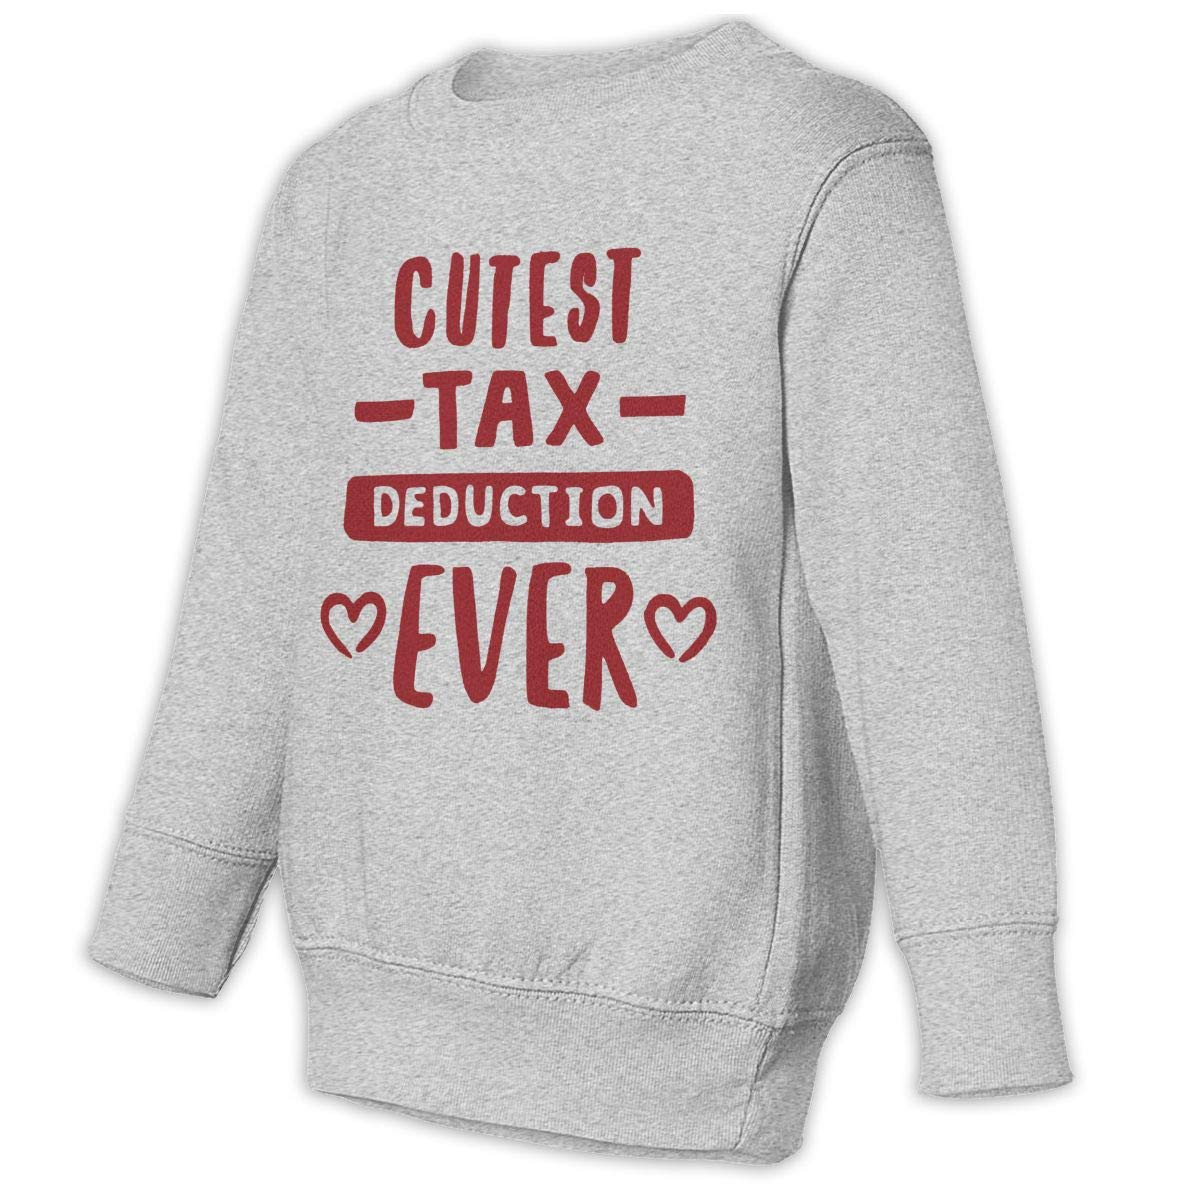 NMDJC CCQ Cutest Tax Deduction Ever Baby Sweatshirt Lovely Kids Hoodies Soft Pullovers